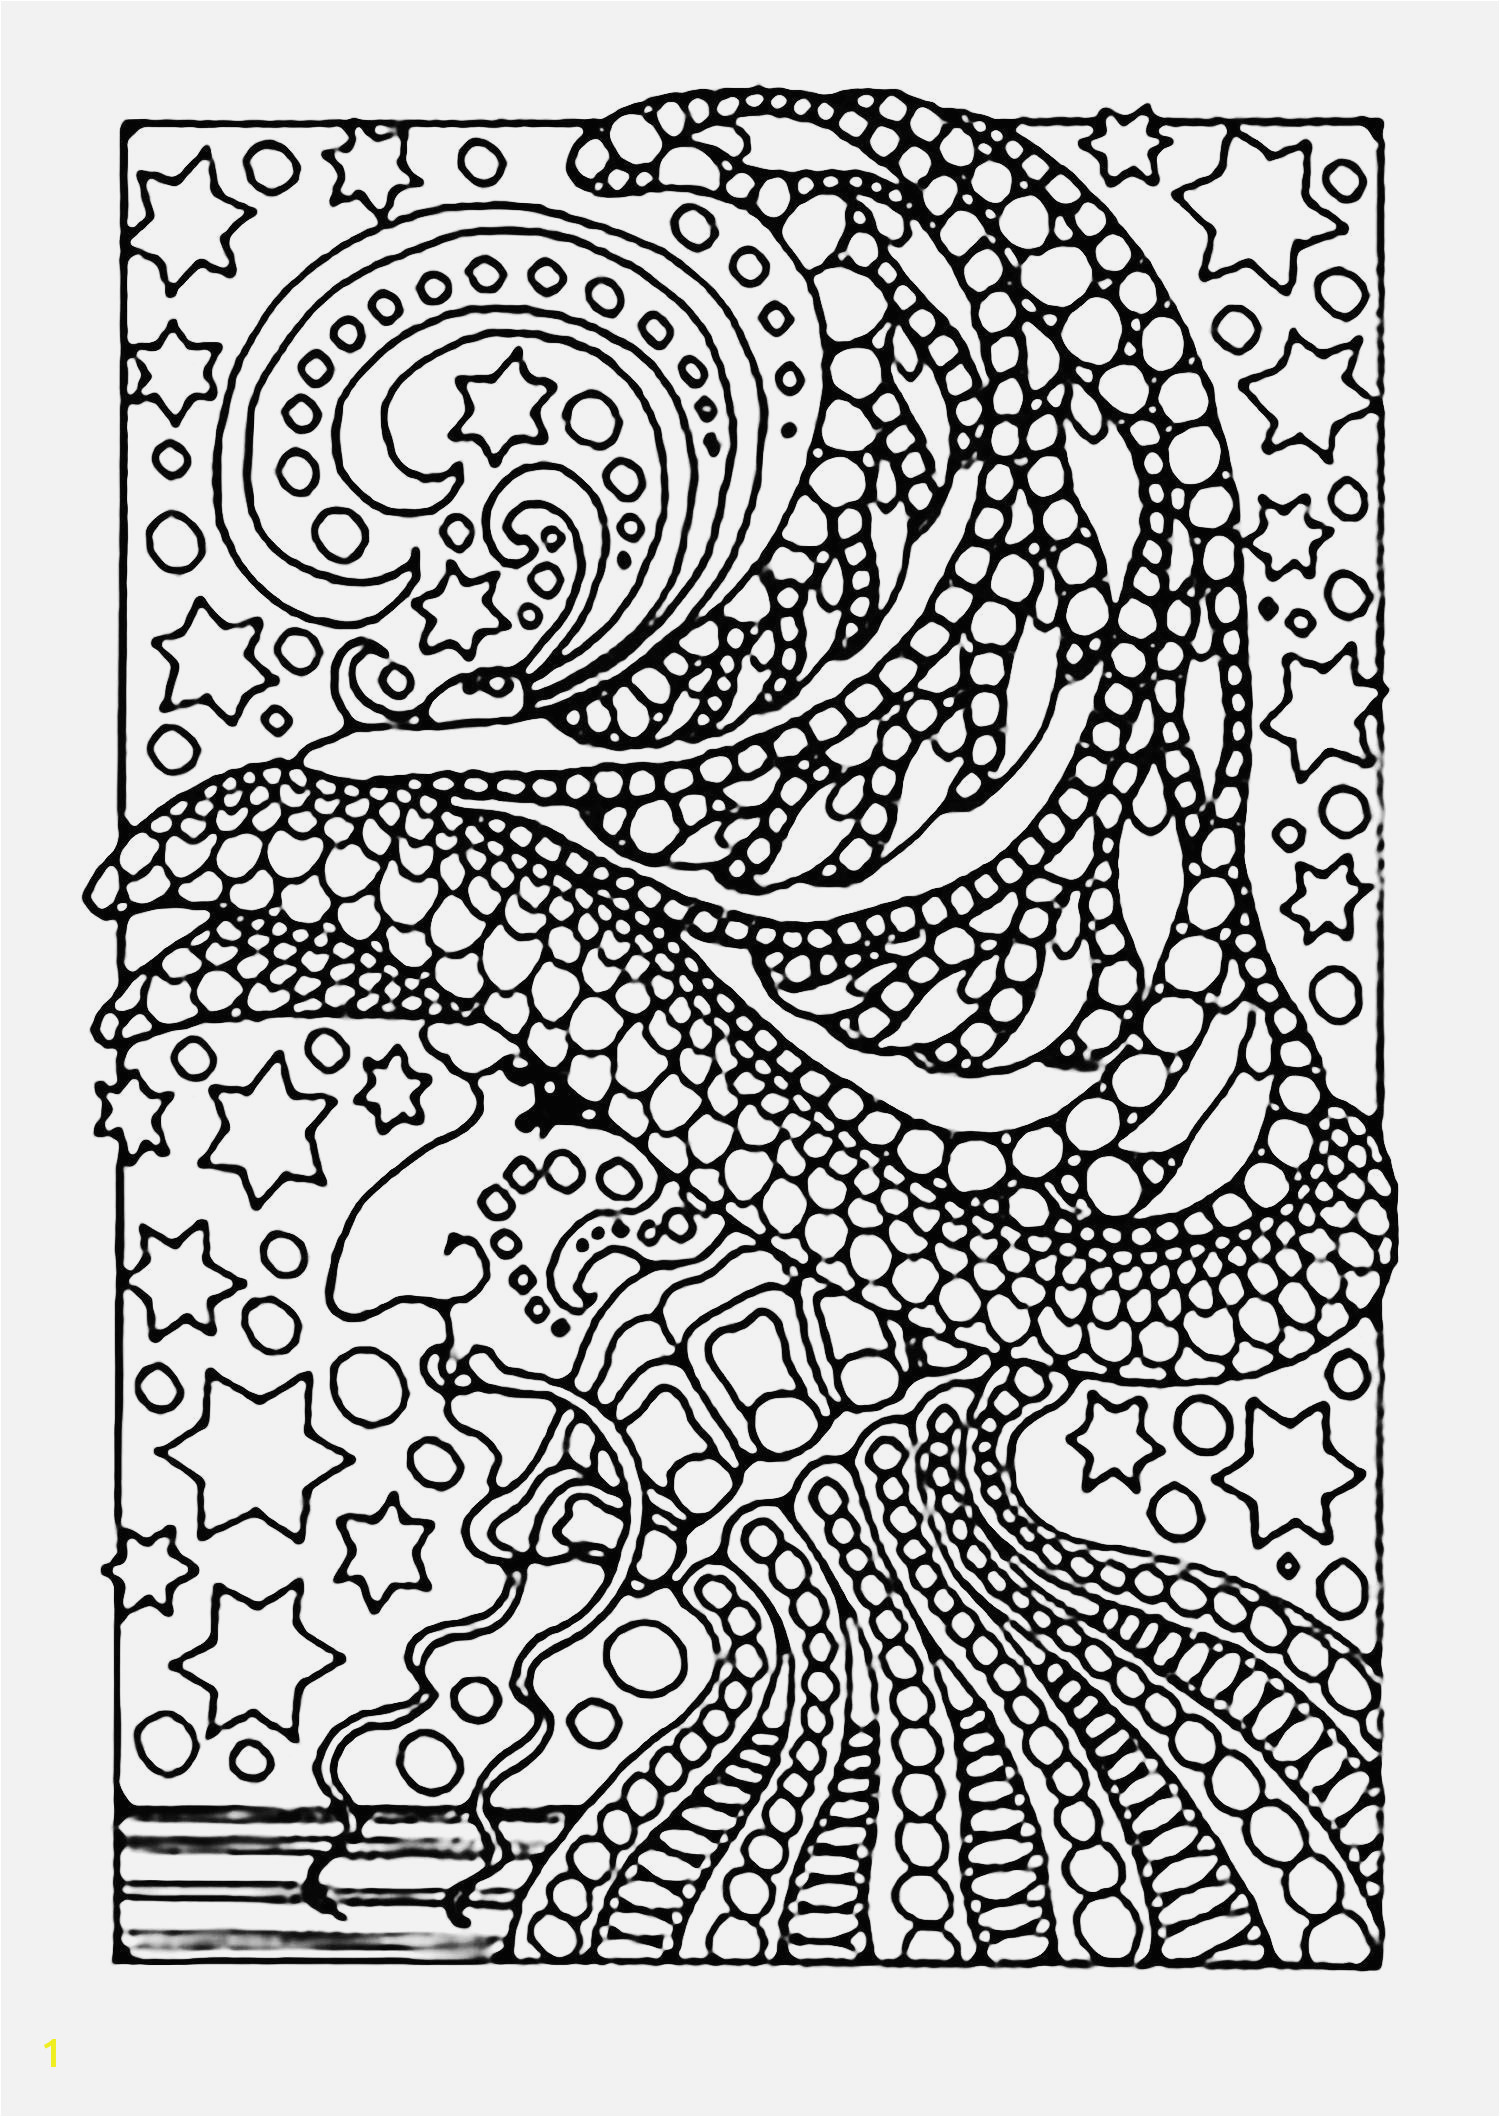 Colering Seiten Fabelhafte Flame Coloring Page Free Printable Coloring Pags Best Everything